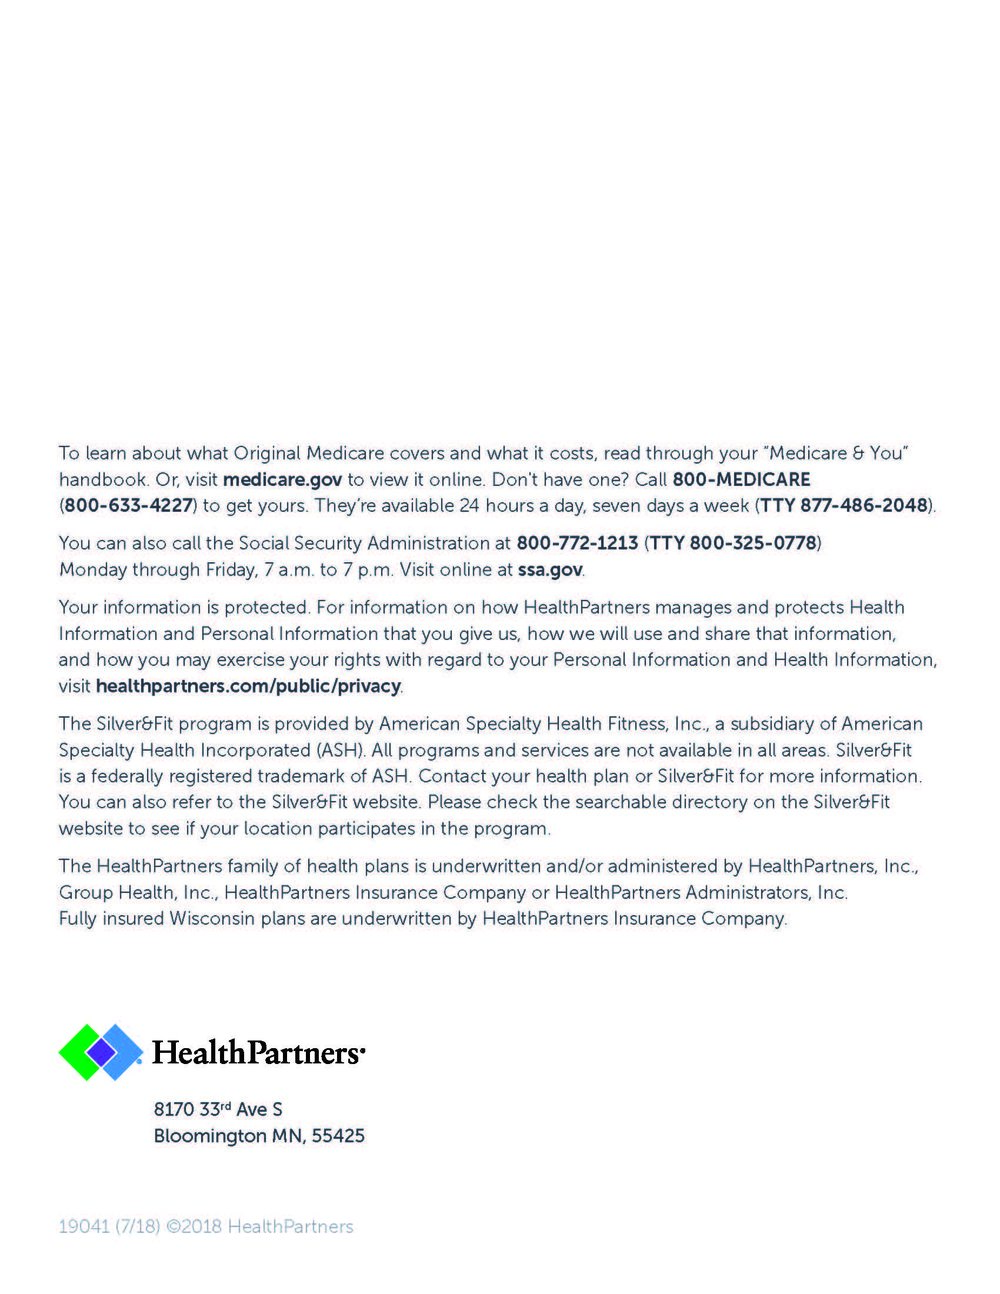 2019 HealthPartners® Medicare Supplement Plan Comparison Guide_Page_11.jpg